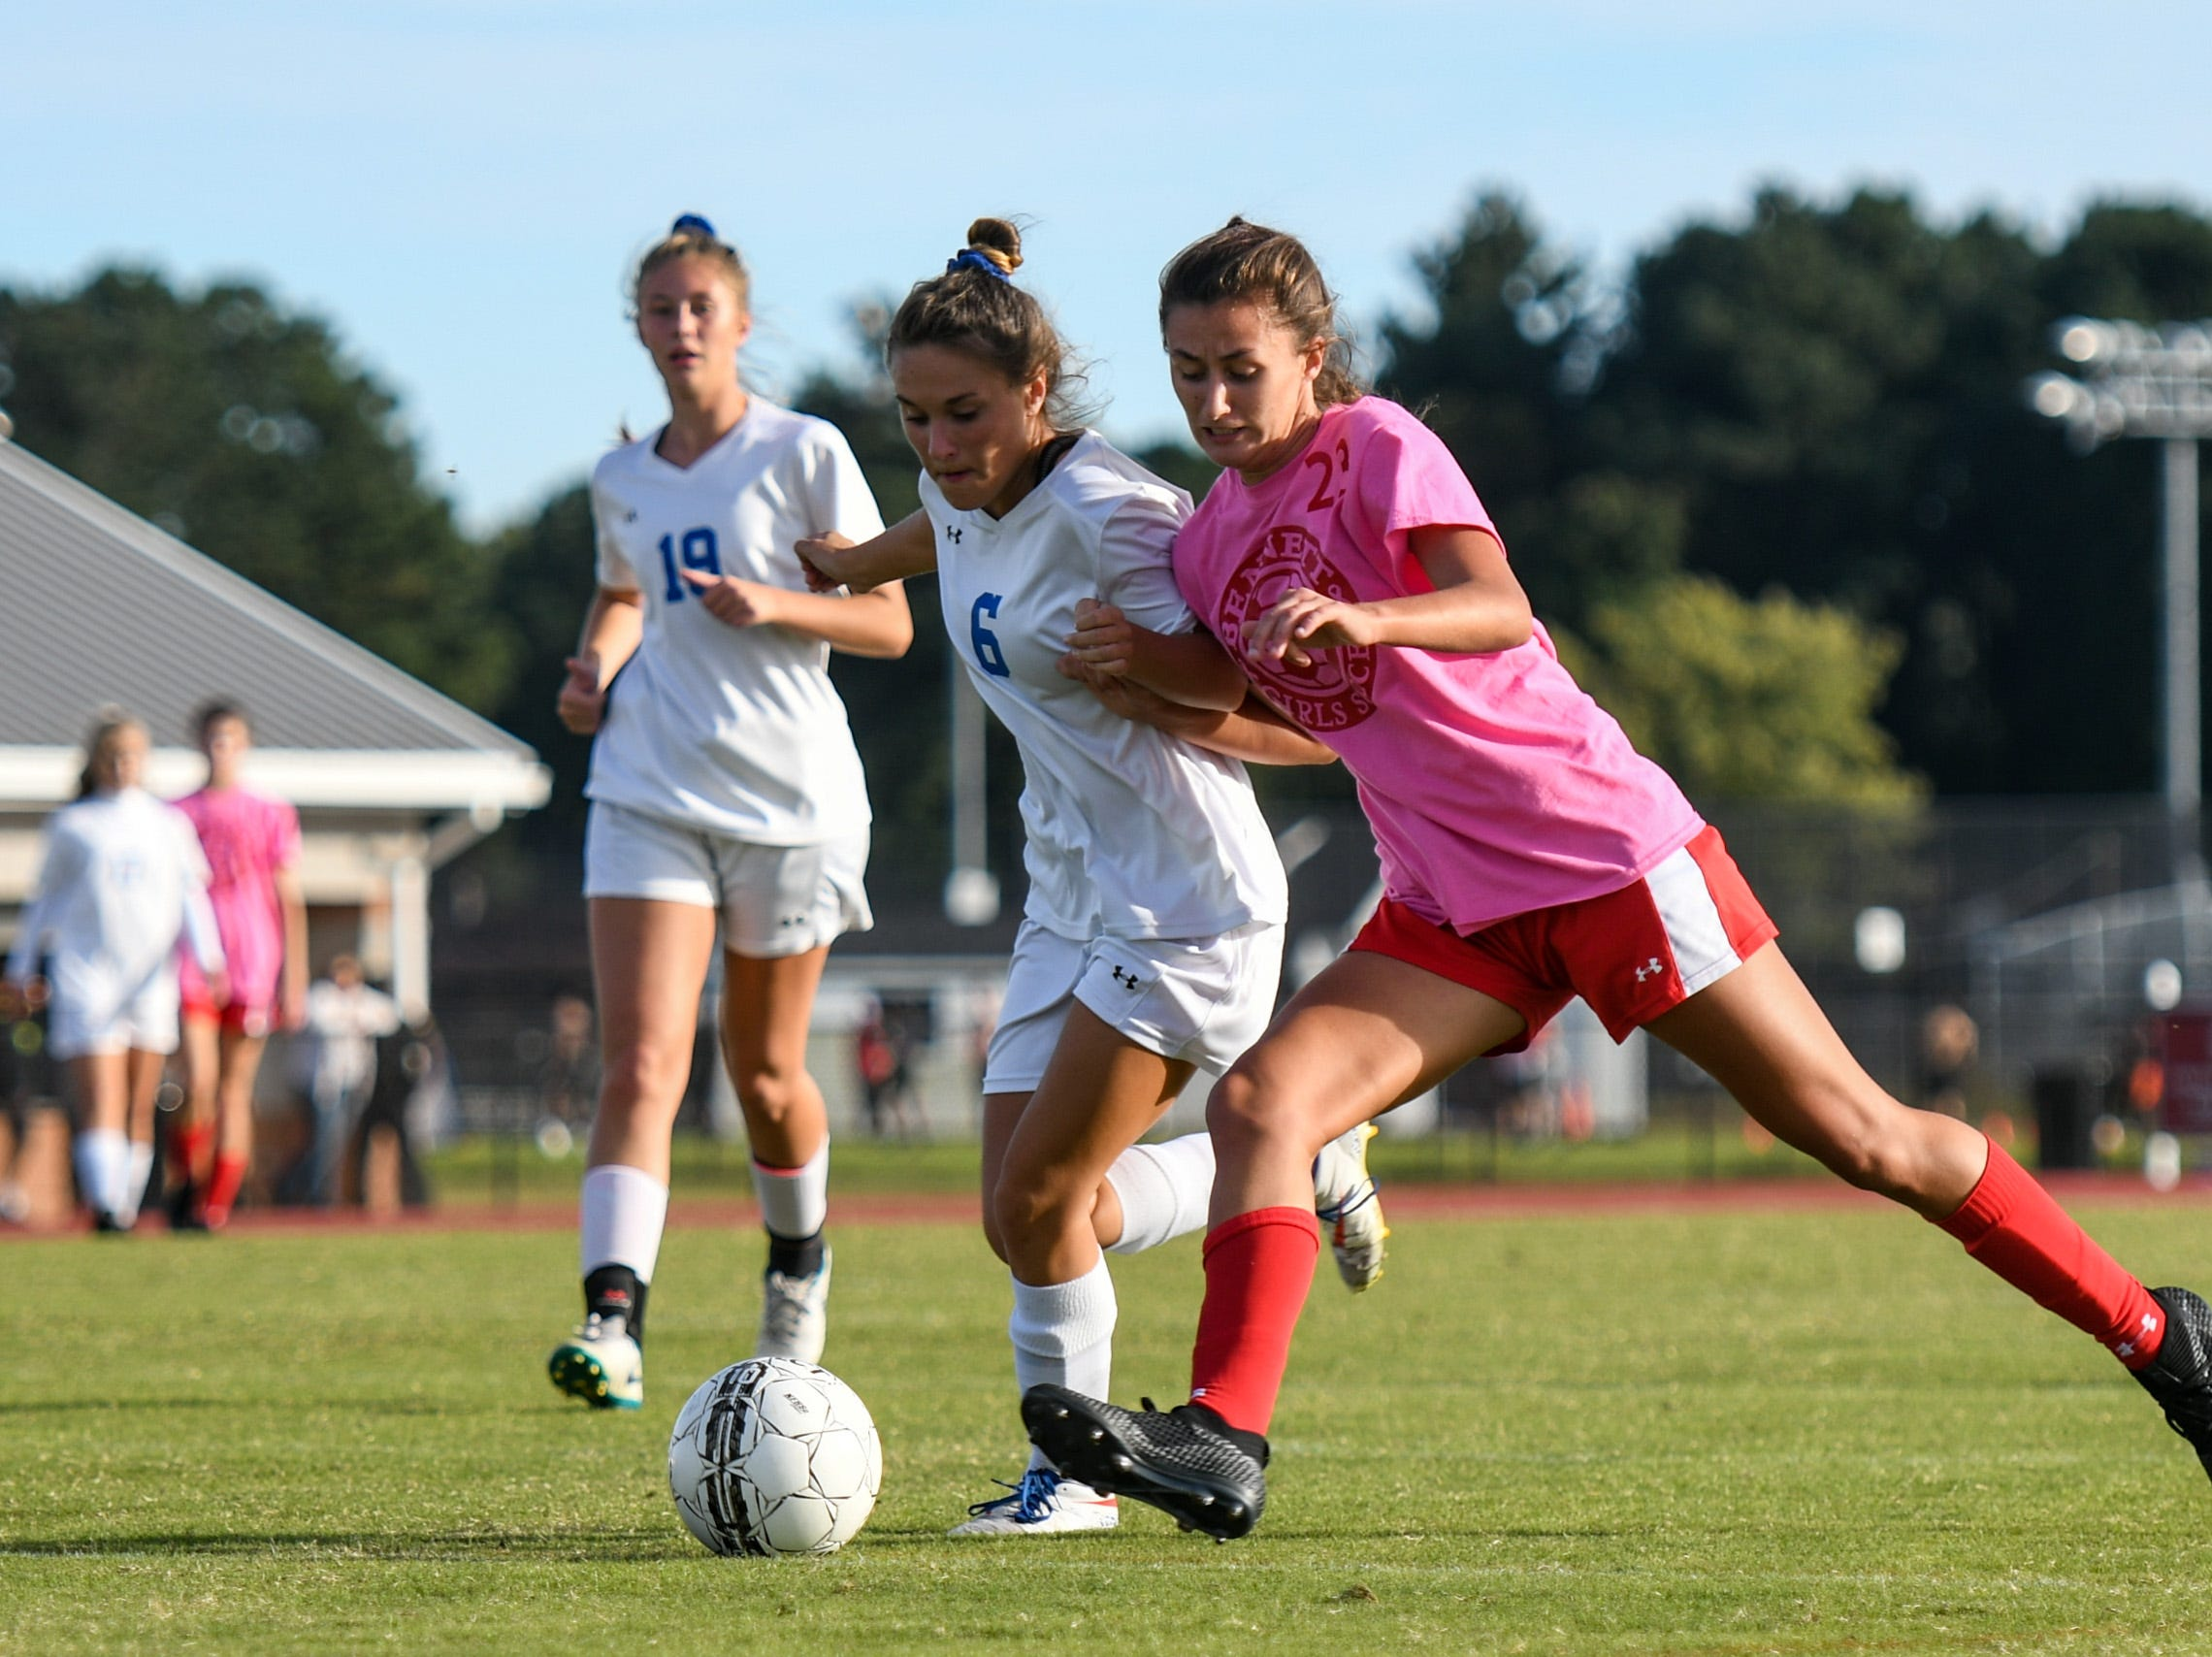 JMB's Olivia Owens (23) fights for the ball against North Caroline's Jalyn Stafford (6) in a game on Friday, Oct 19, 2018.